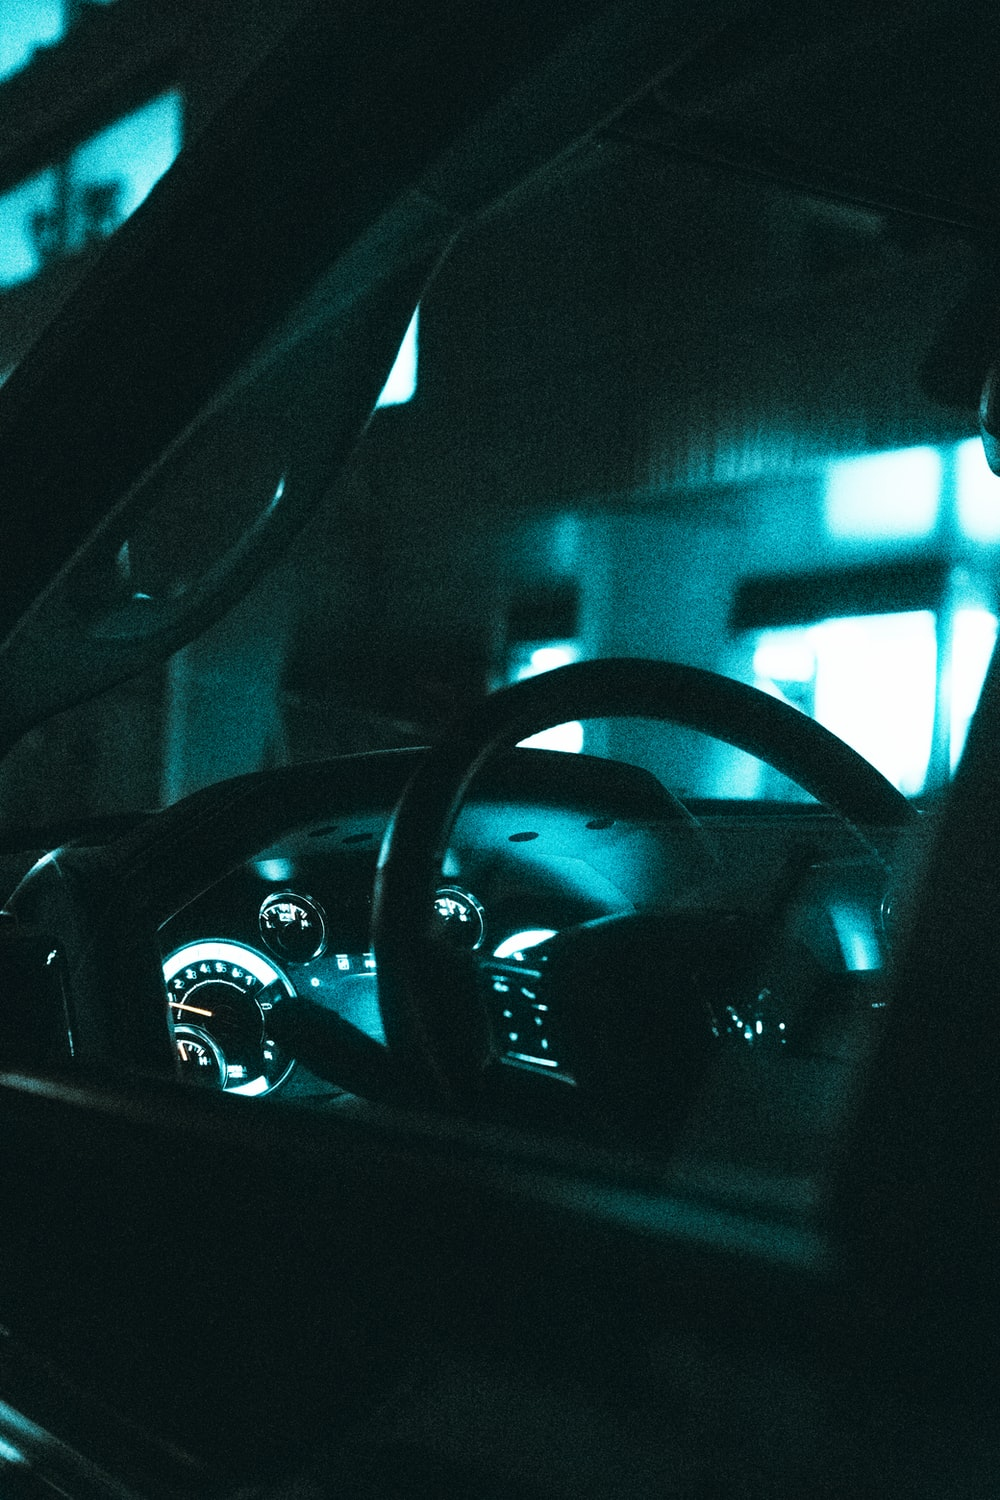 black steering wheel in close up photography